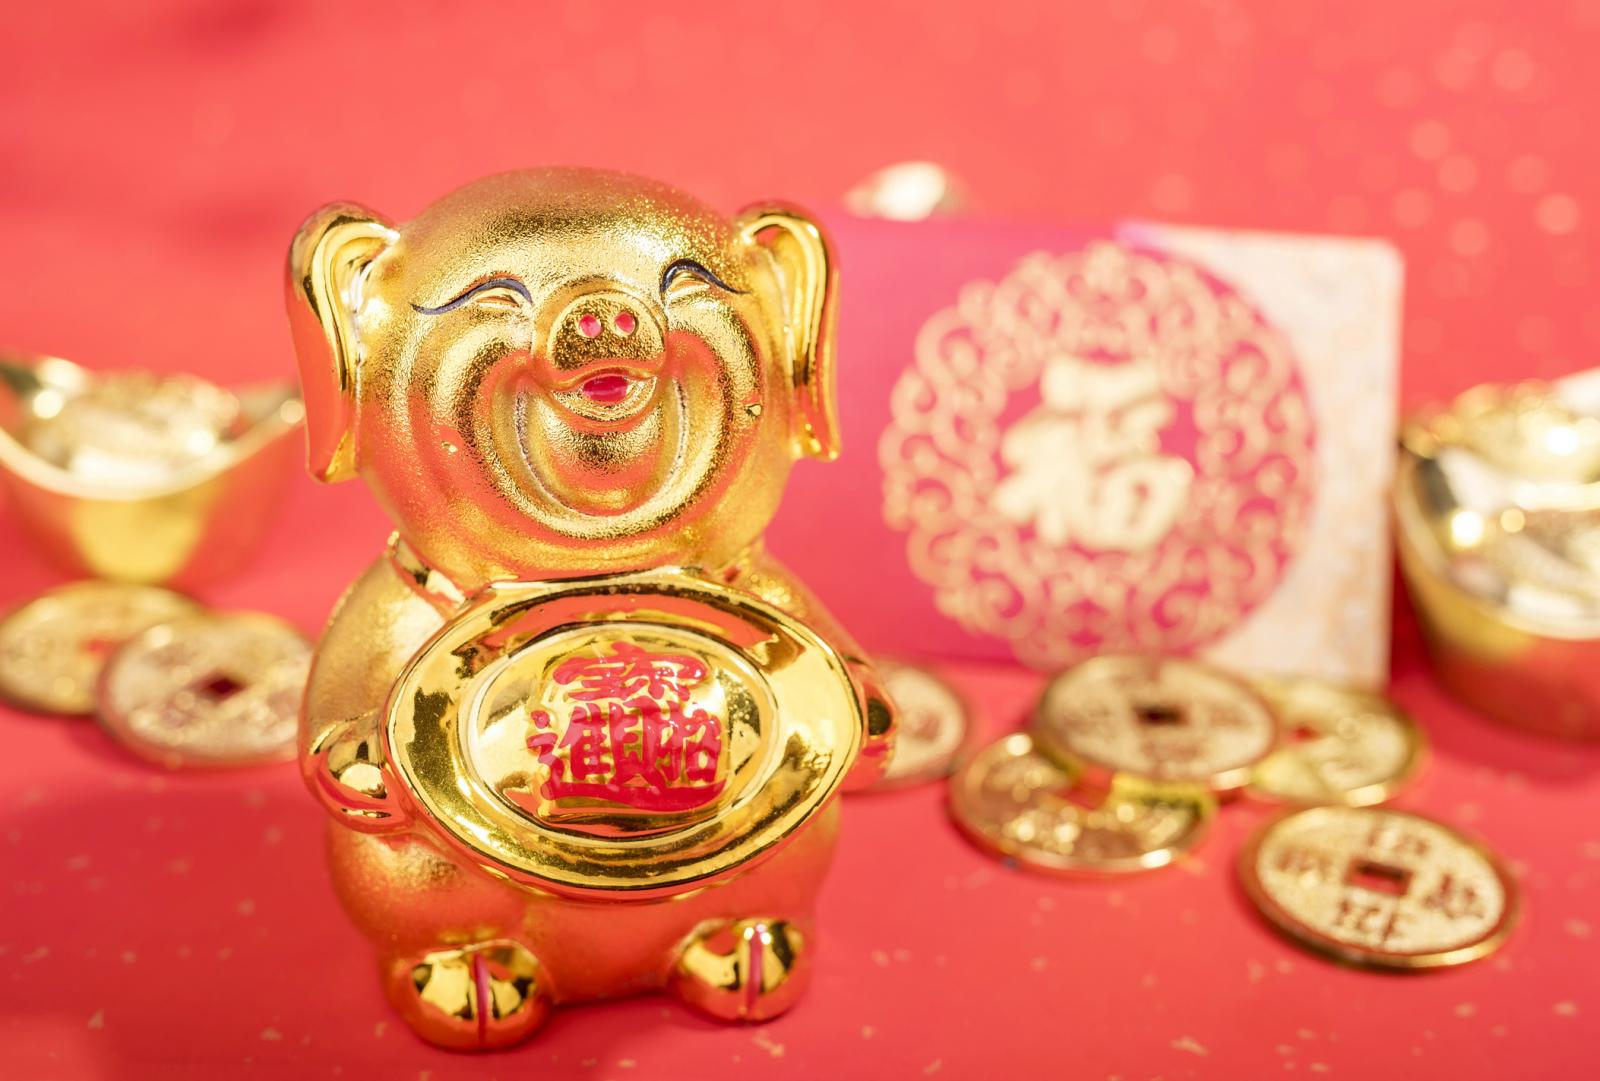 Golden pig statue on red background